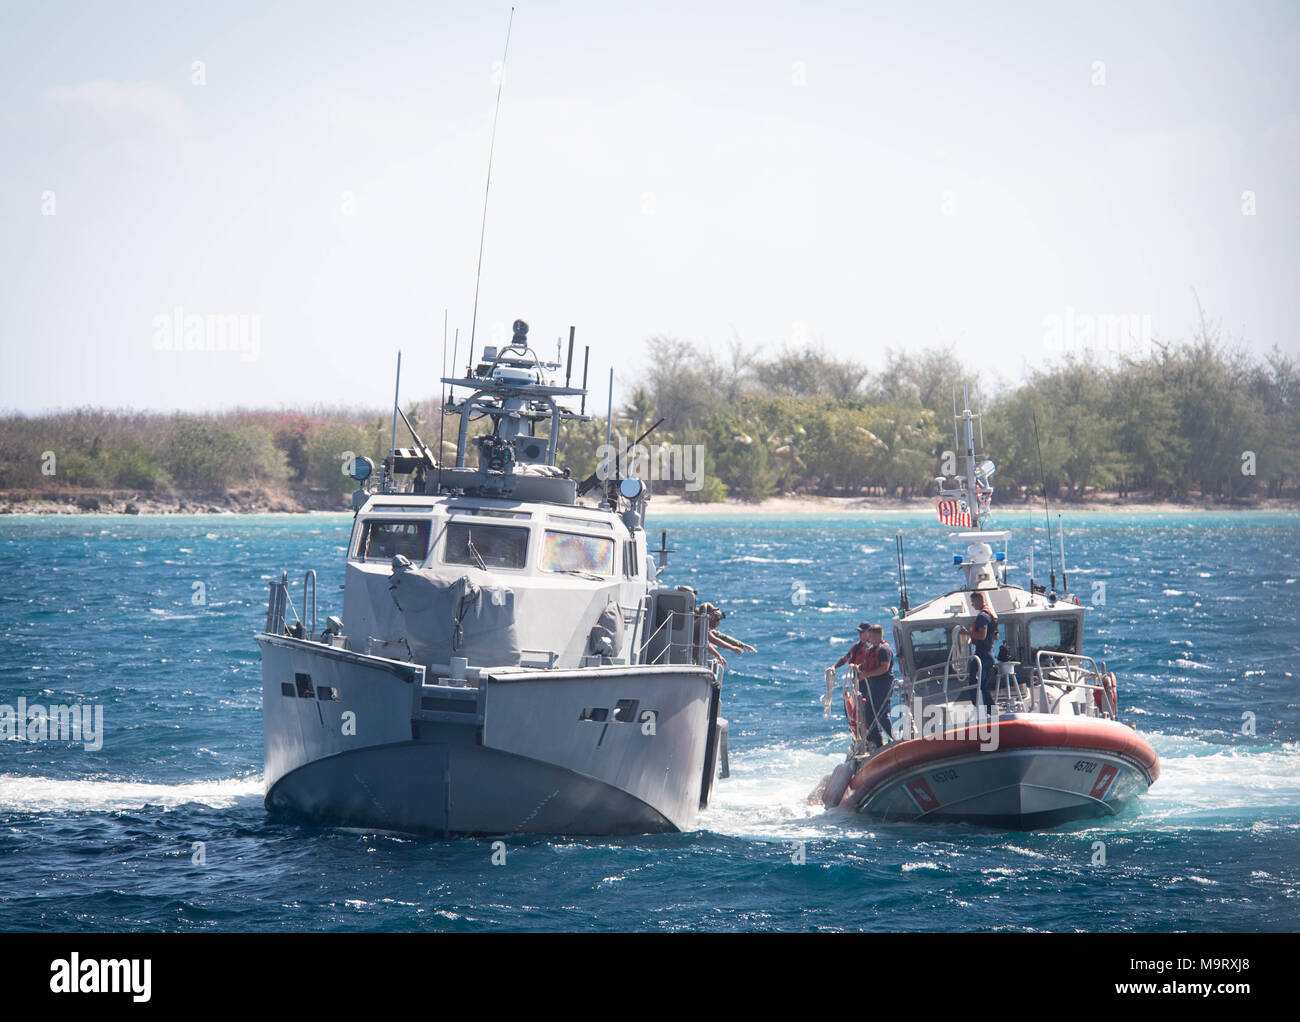 Sailors assigned to Coastal Riverine Squadron (CRS) 4, Det. Guam reach for a line from U.S. Coast Guard Sailors aboard a 47-foot Motor Lifeboat, assigned to U.S. Coast Guard Sector Guam, during a towing exercise in Apra Harbor, Guam, March 28, 2018. CRS-4, Det. Guam is assigned to Commander, Task Force 75, the primary expeditionary task force responsible for planning and execution of coastal riverine operations, explosive ordnance disposal, diving engineering and construction, and underwater construction in the U.S. 7th Fleet area of operations. (U.S. Navy Combat Camera photo by Mass Communica Stock Photo